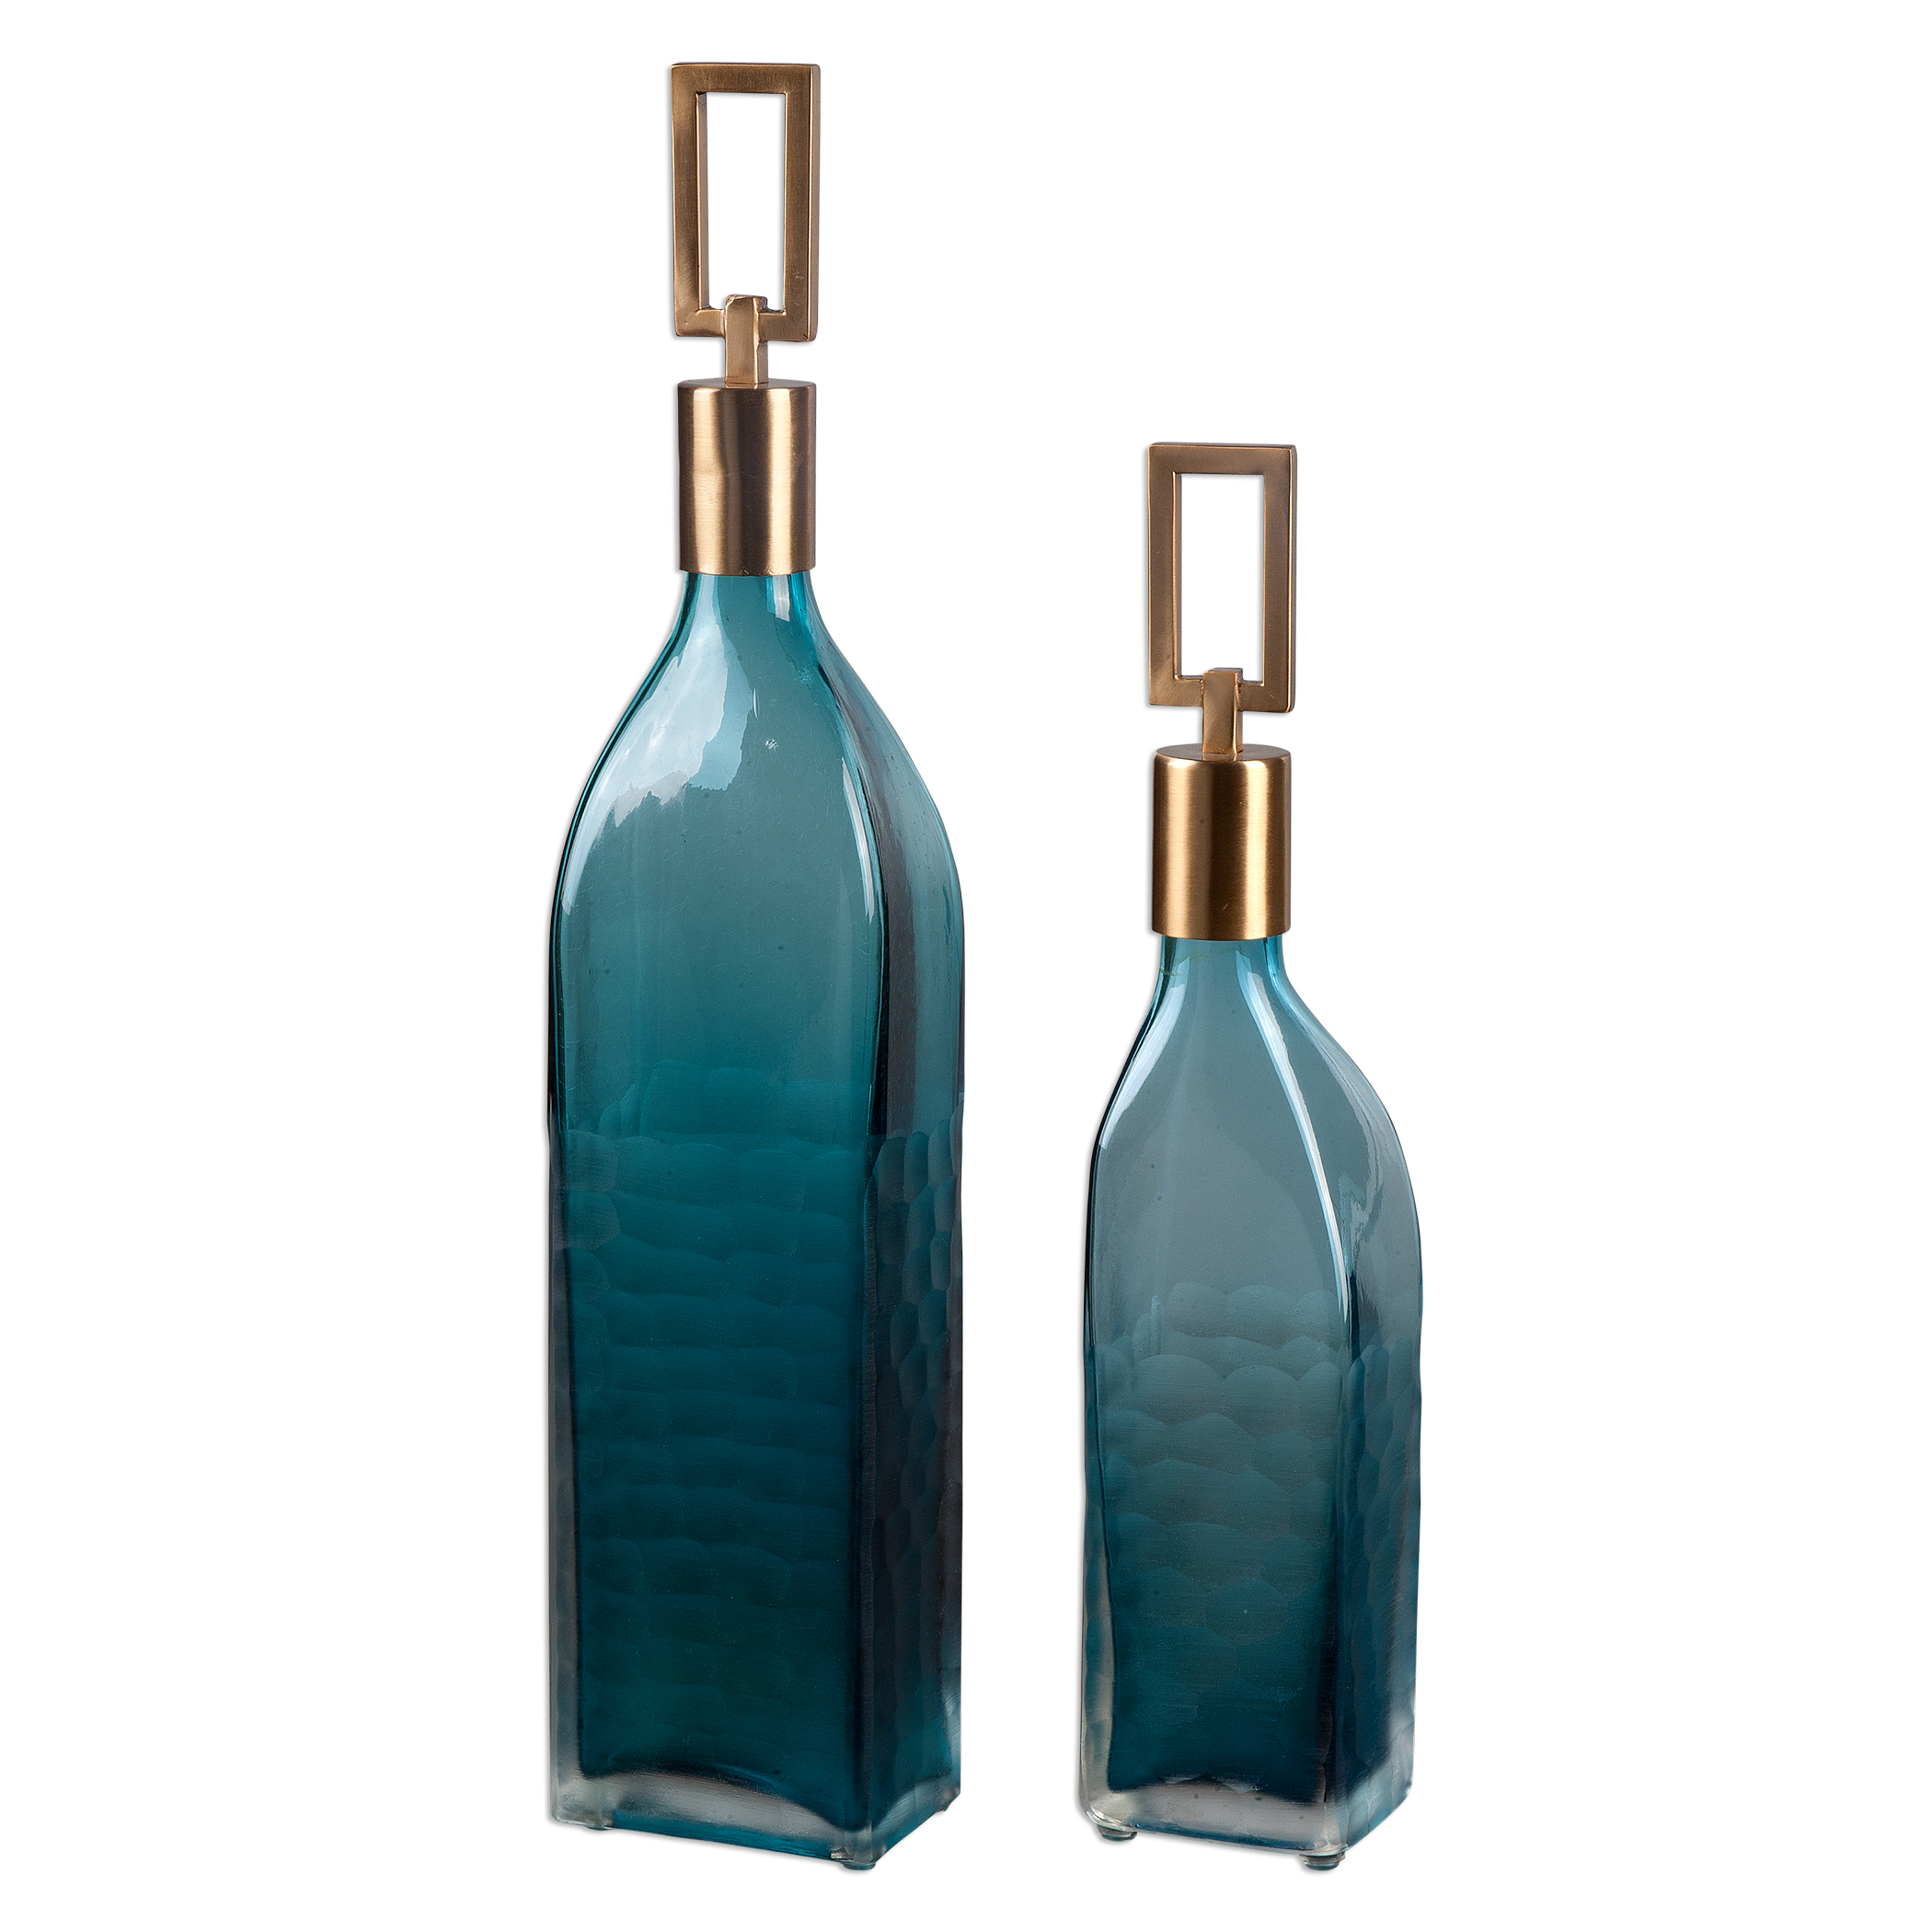 Uttermost Accessories Annabella Teal Glass Bottles, S/2 - Item Number: 20076